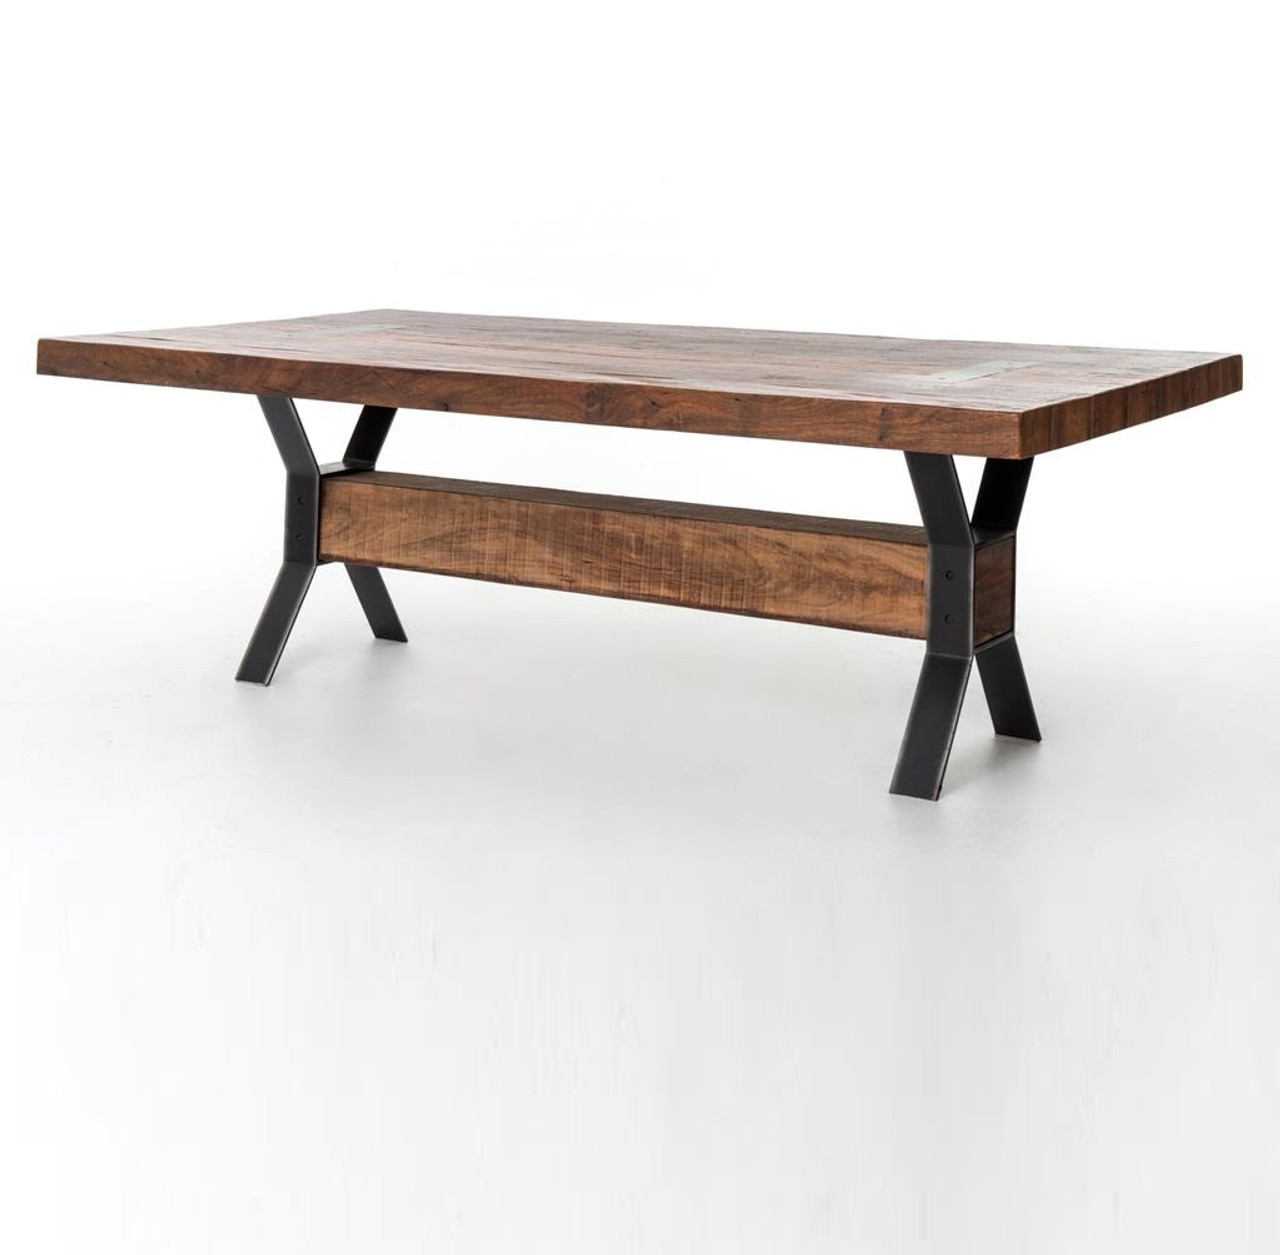 Bina tyson industrial 72 dining table zin home for Dining room table 72